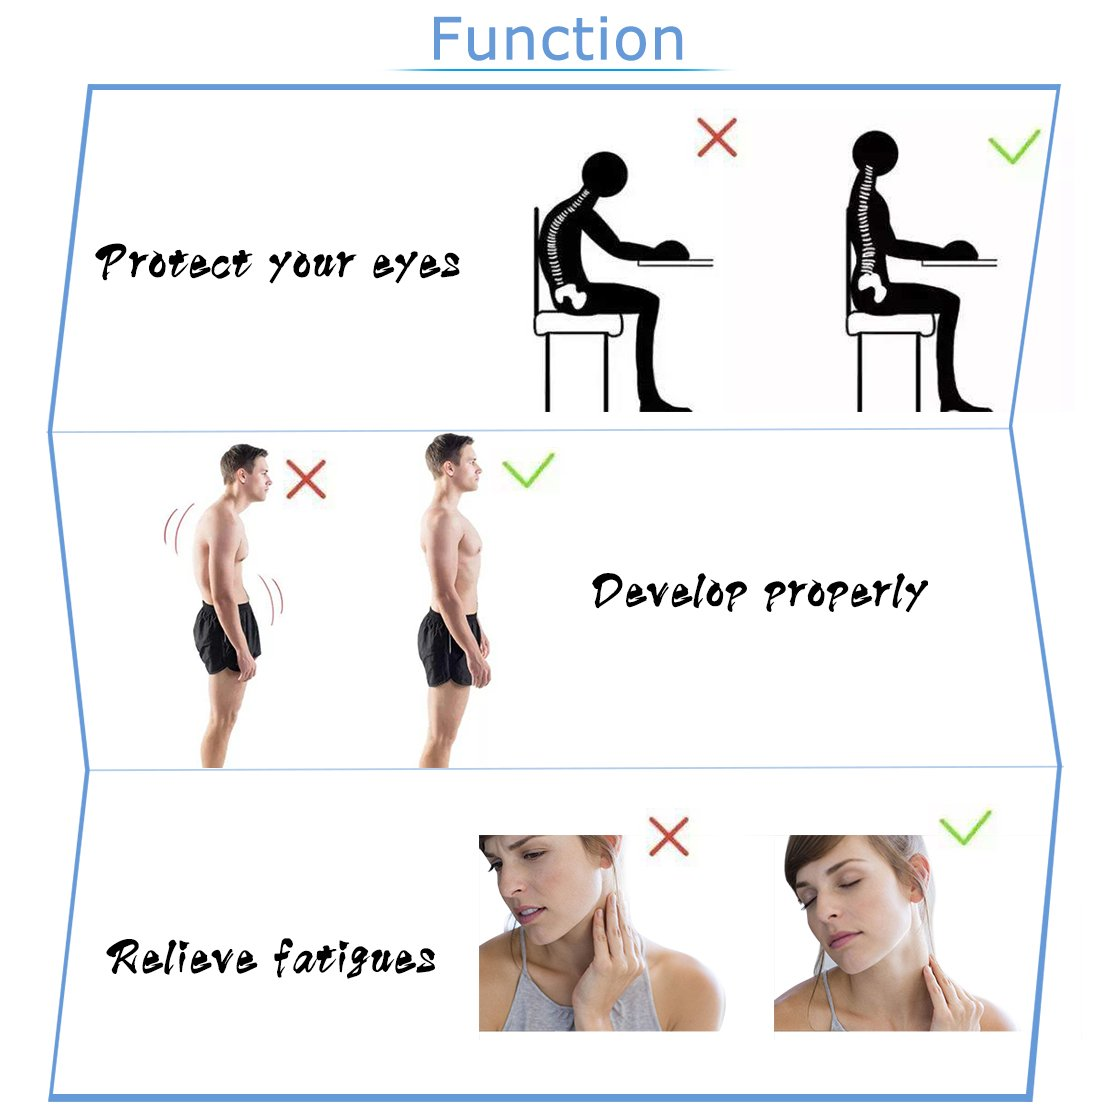 Posture Corrector Upper Back Braces for Women Men, Adjustable Thoracic Brace for Hunching Slouching, Neck Shoulder Supports for Upper Back Alignment and Pain Relief, Bonus Gift 2x Armpit Pads by STSTECH (Image #5)